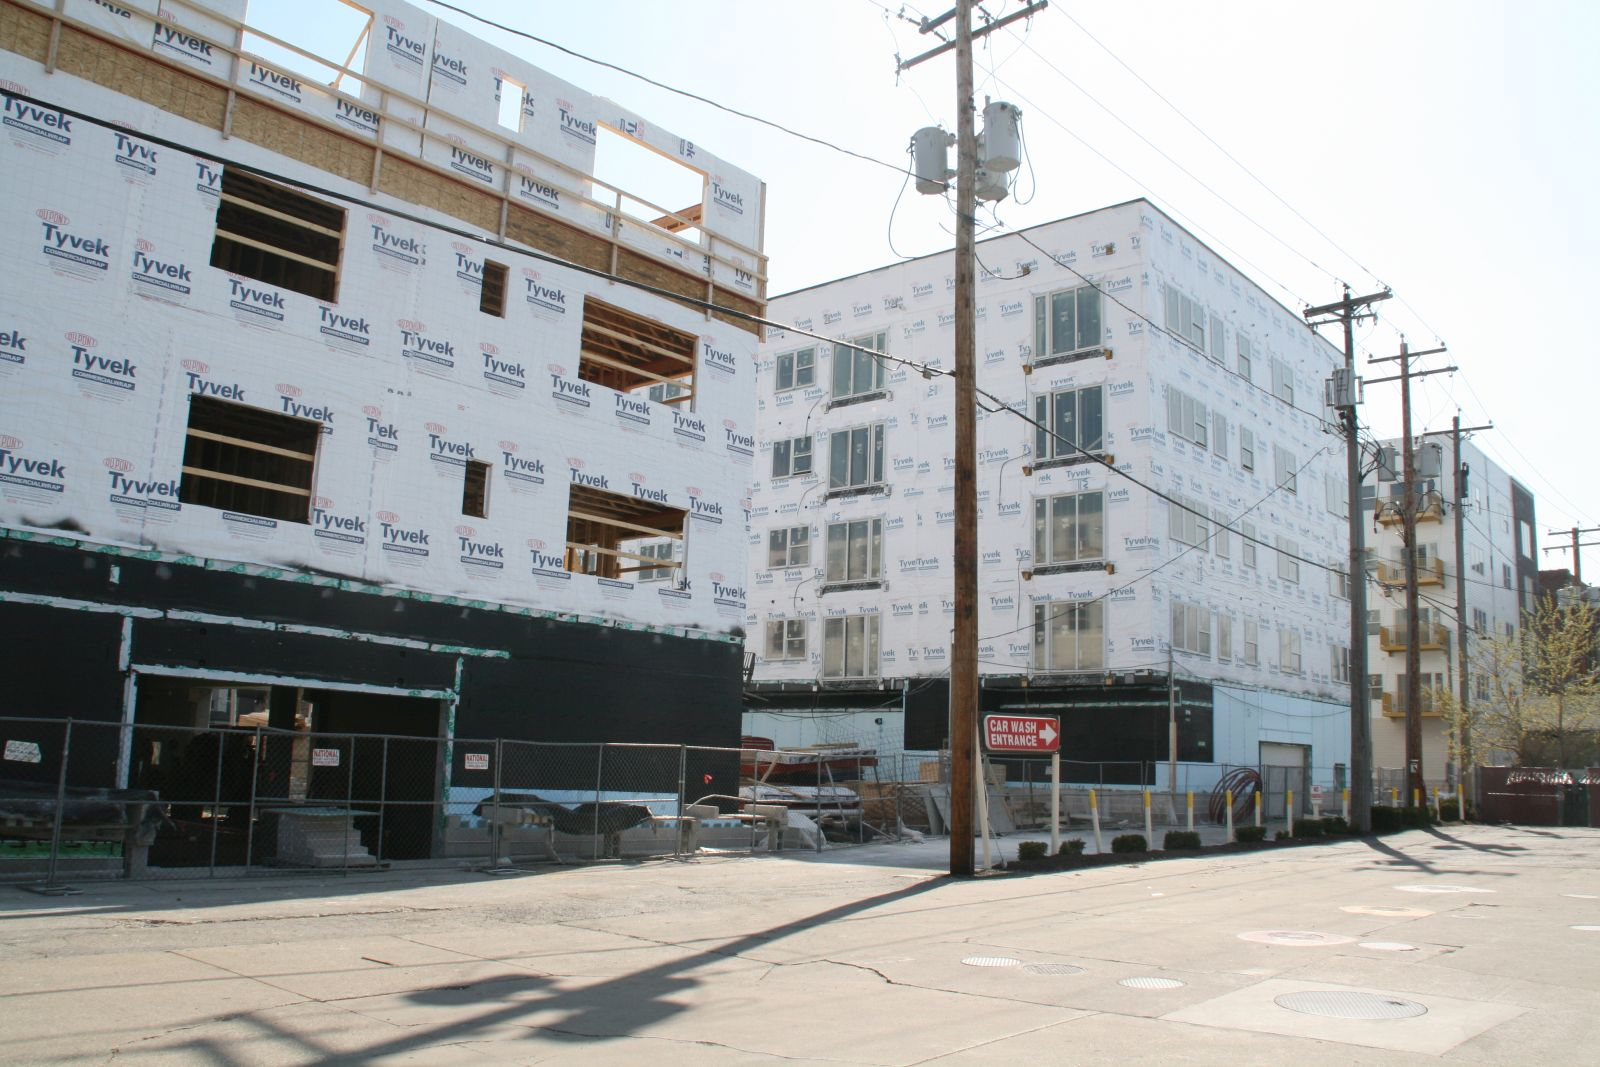 1029 S. 1st St. Construction